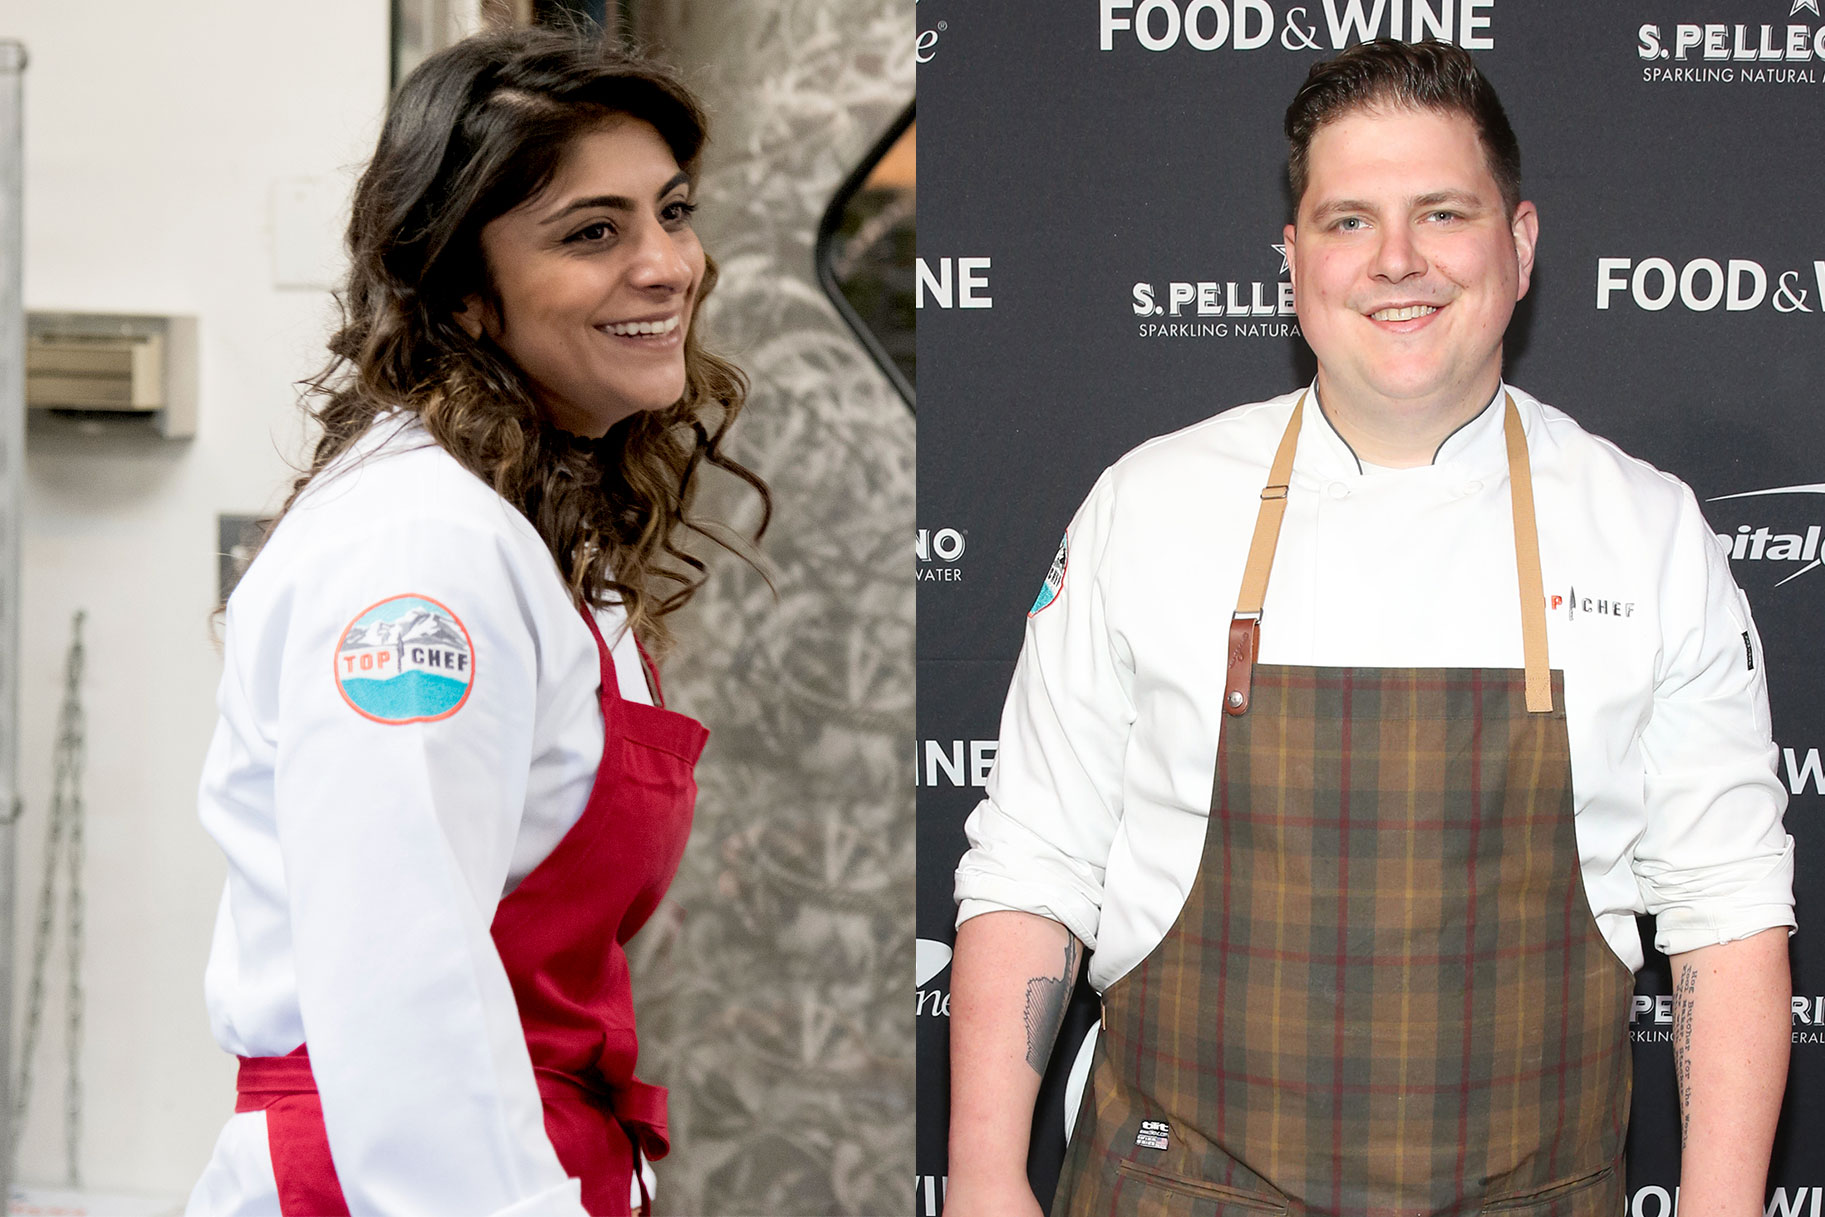 Top Chef winner Joe Flamm on Fatima Ali